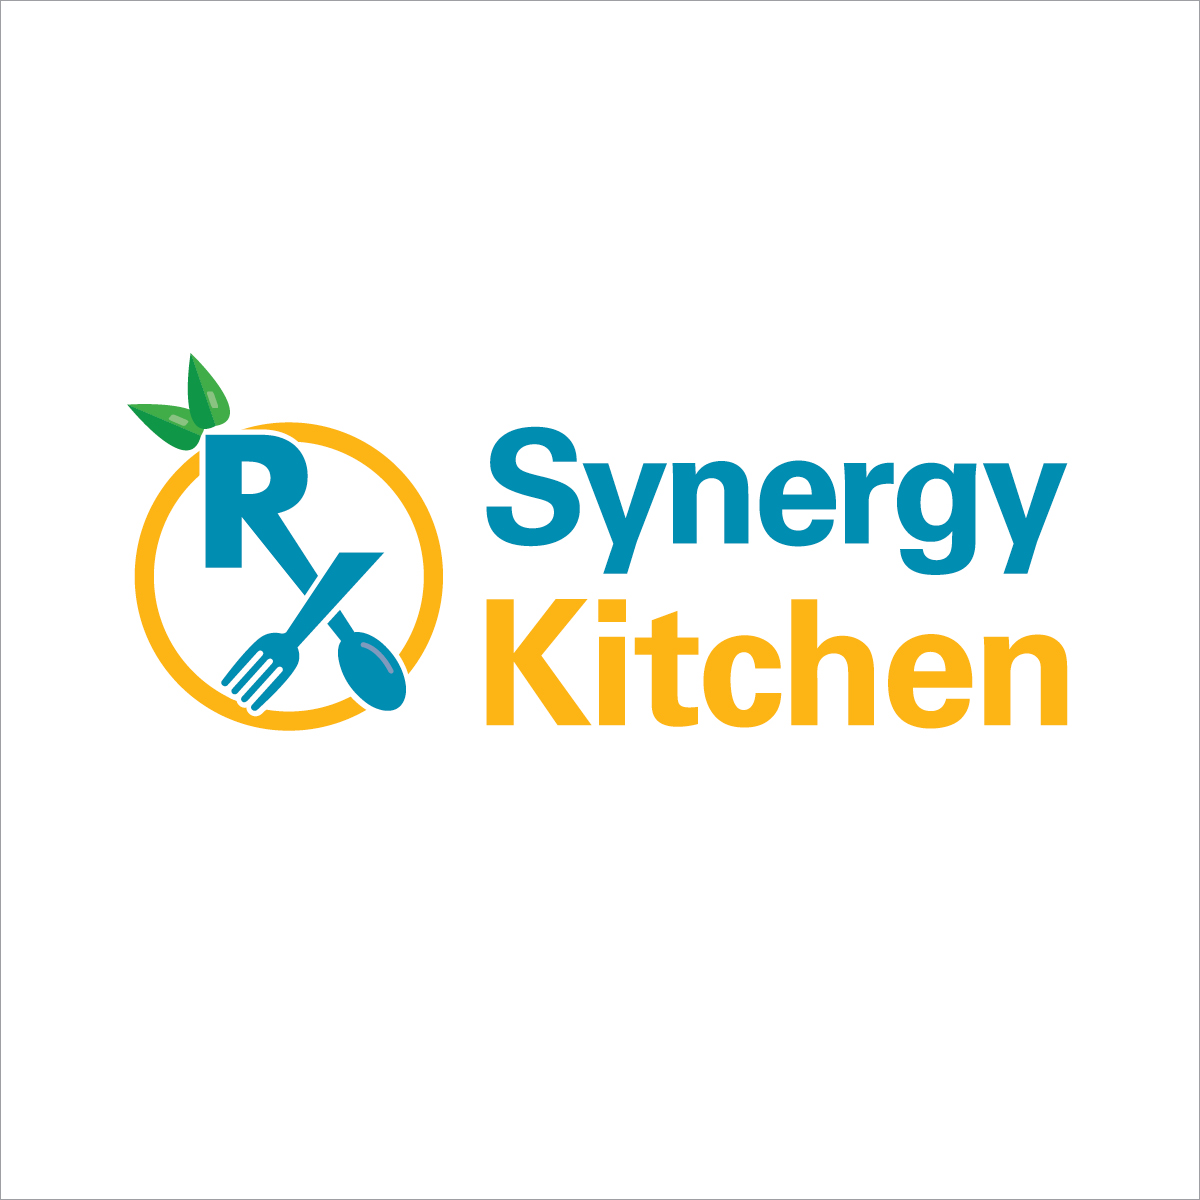 Synergy Kitchen